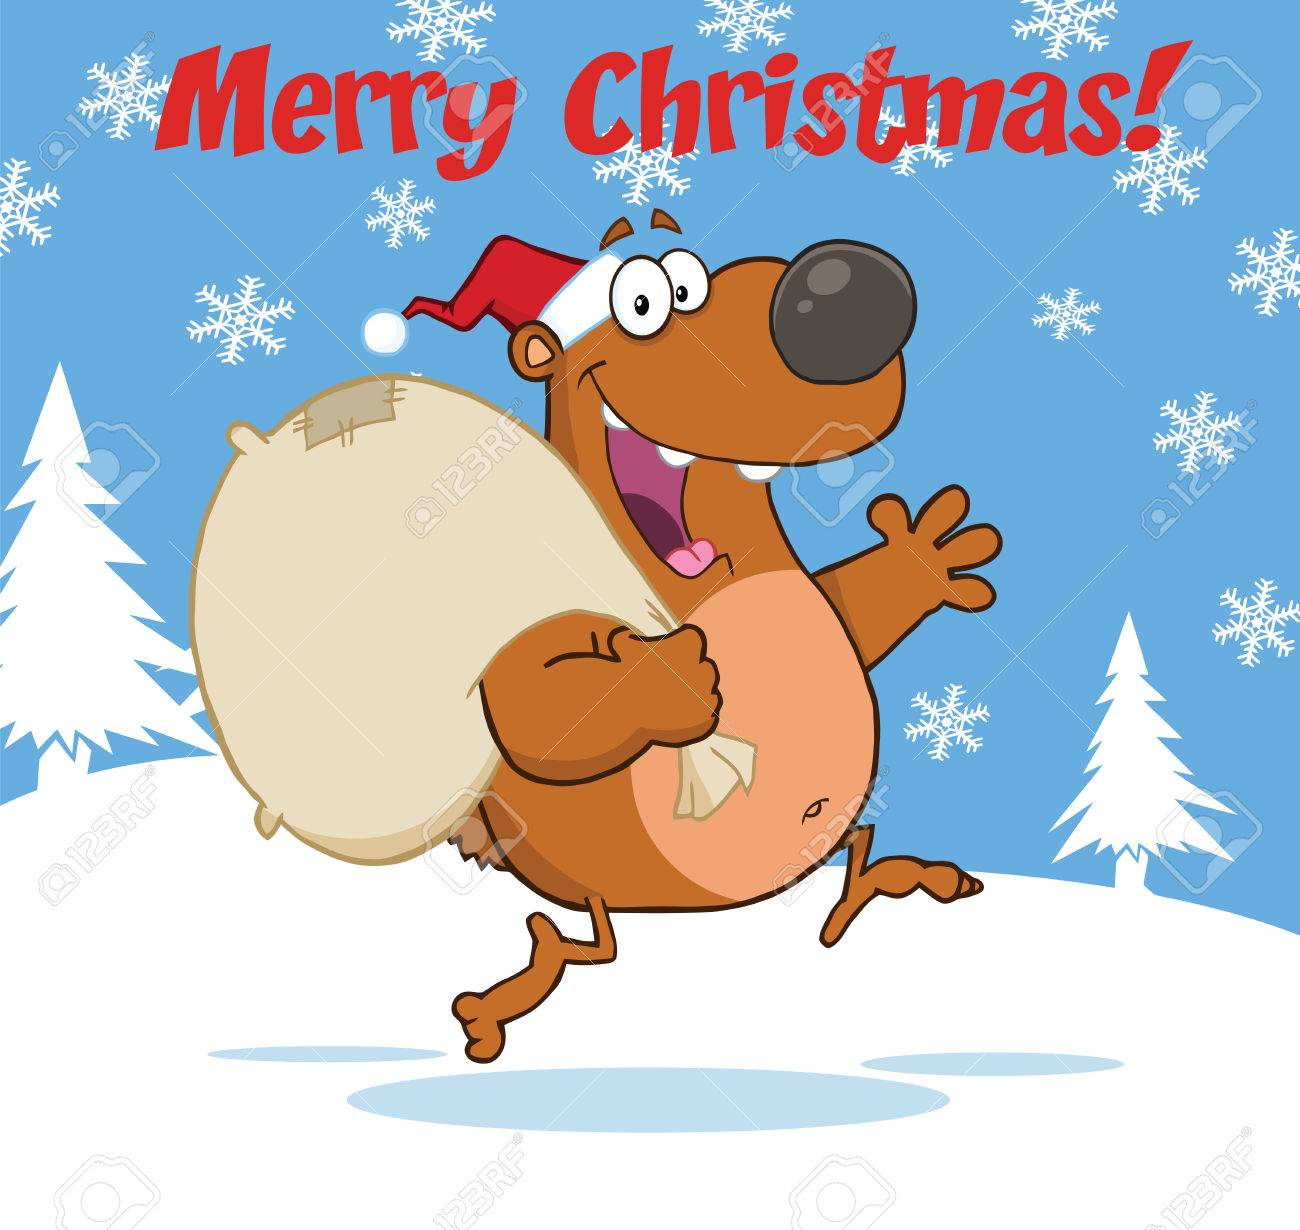 Christmas Wishes Bear.Merry Christmas Greeting With Santa Bear Running With Bag And